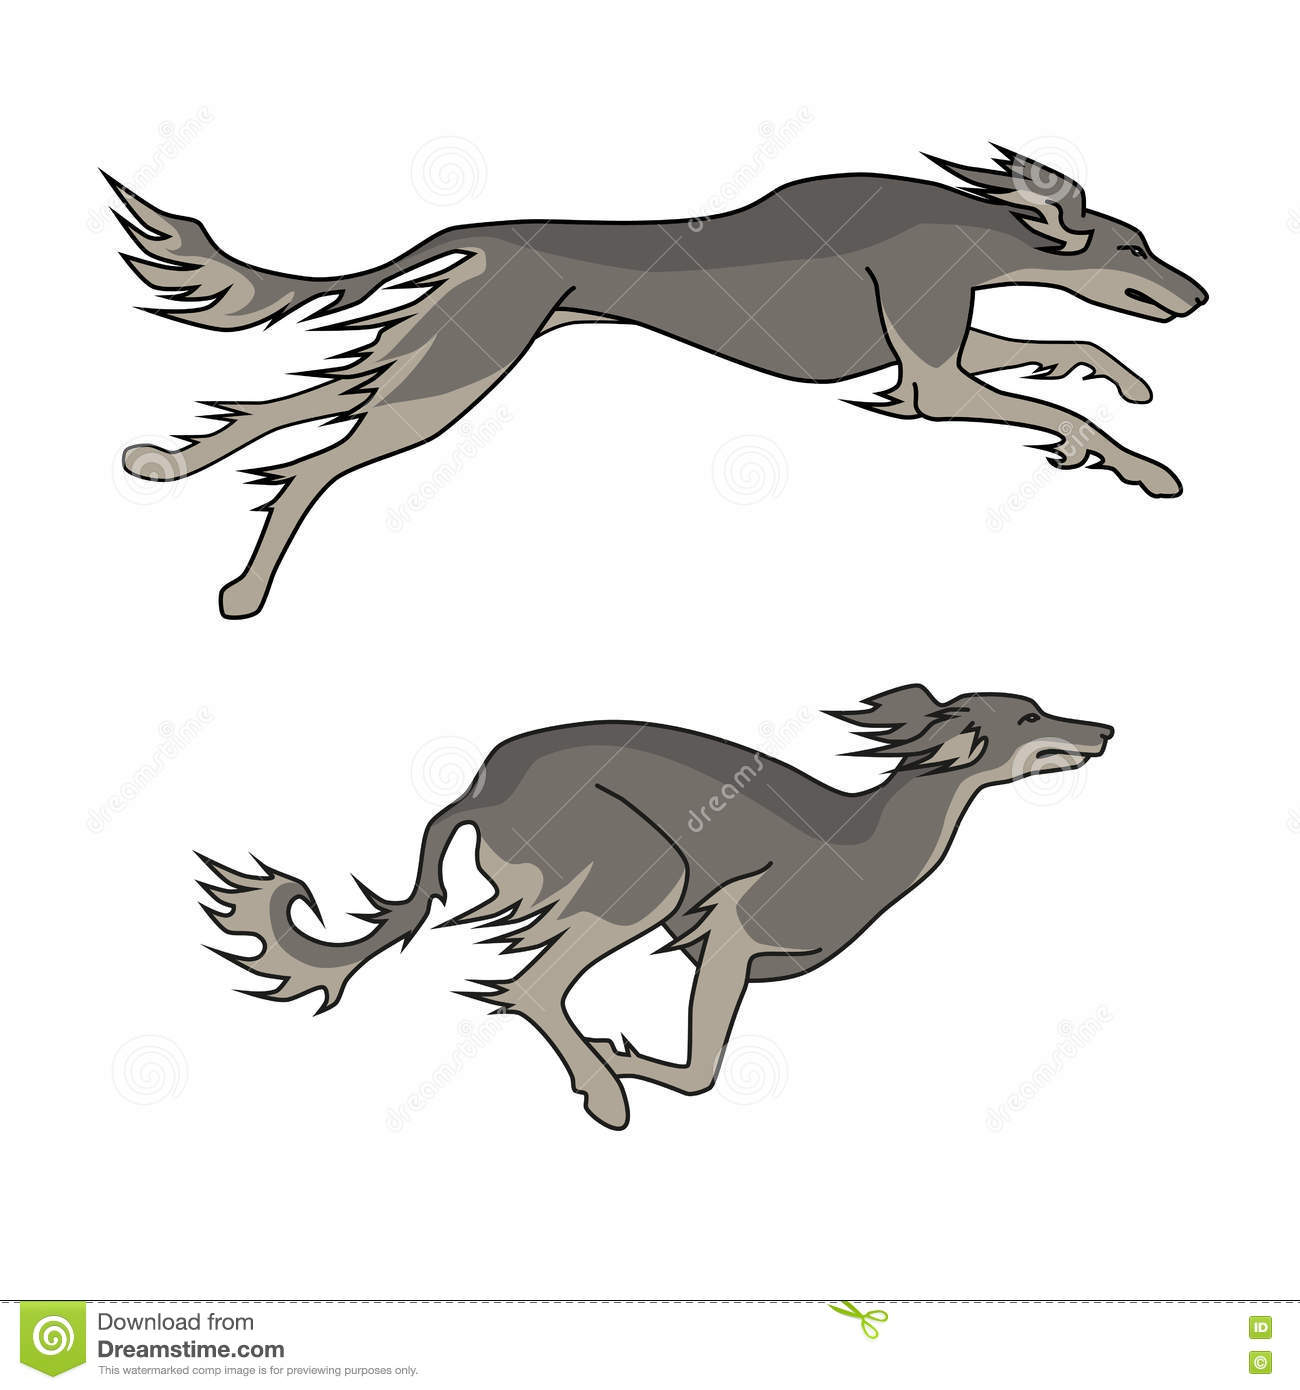 Running Dogs Saluki Breed, Two Poses Stock Vector - Illustration of